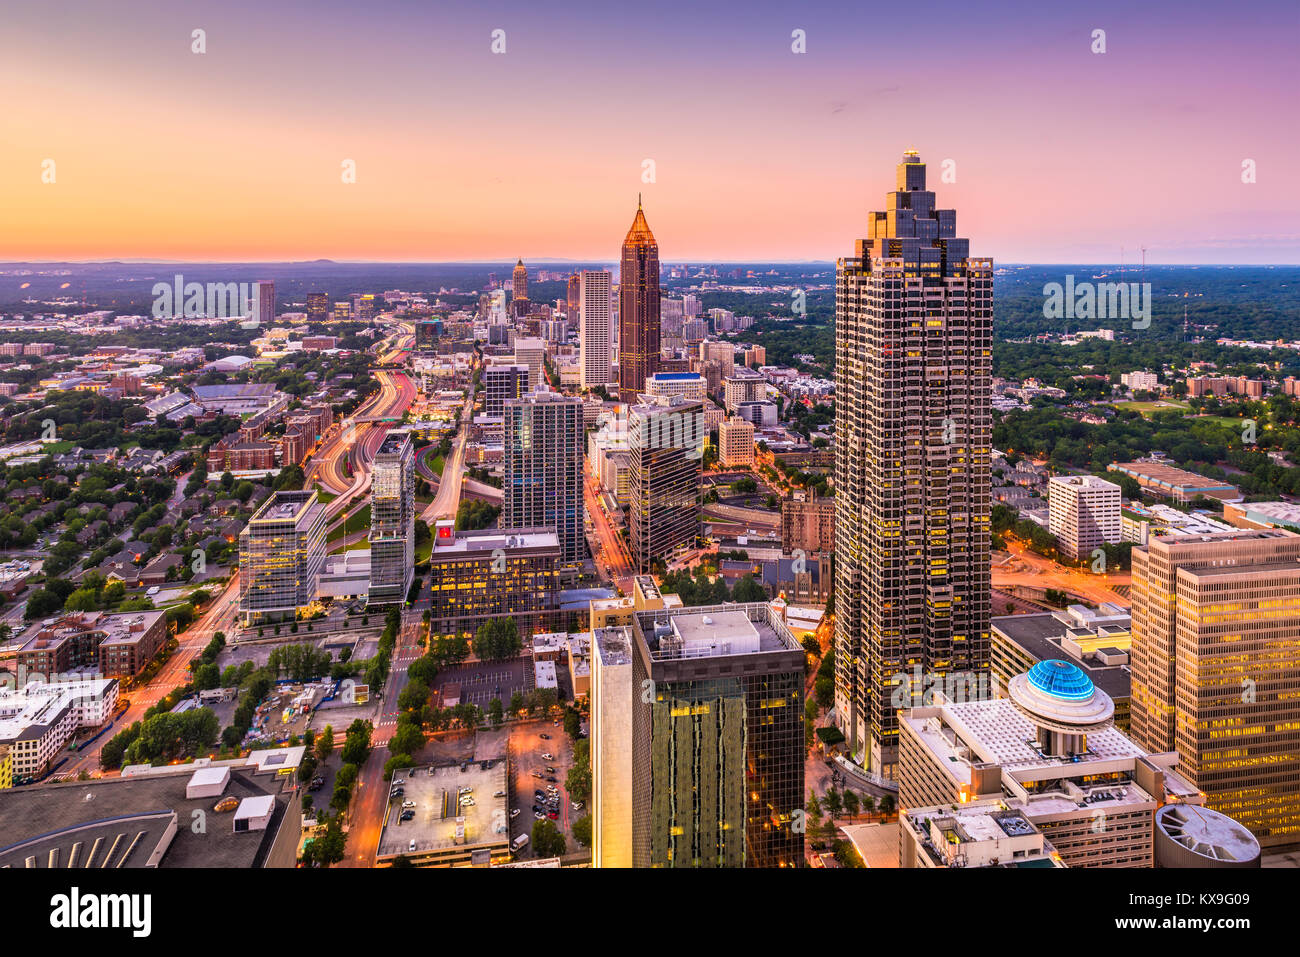 aerial view atlanta stock photos aerial view atlanta stock images alamy. Black Bedroom Furniture Sets. Home Design Ideas